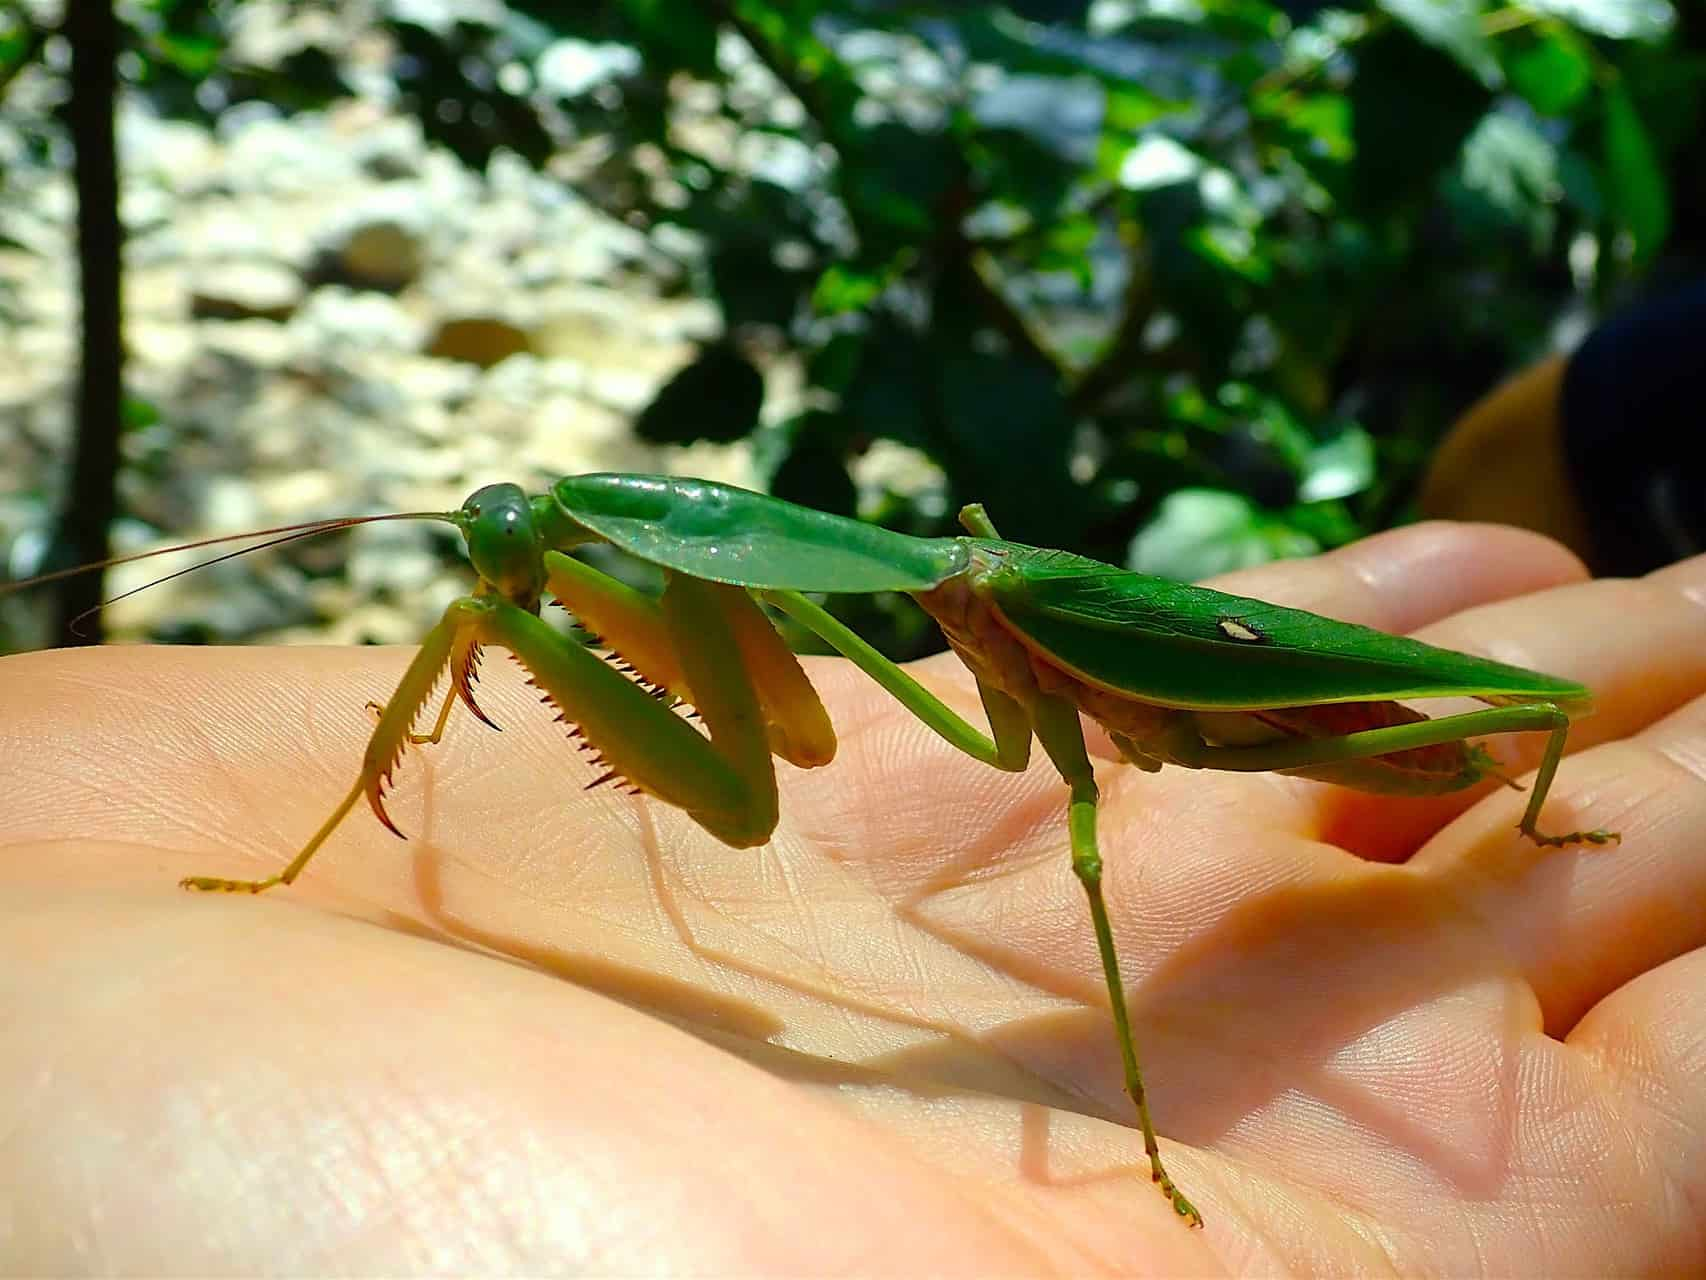 GRASHOPPER IN GUNUNG LEUSER NATIONAL PARK - BUKIT LAWANG JUNGLE TREKKING BY SUMATRA ECOTRAVEL